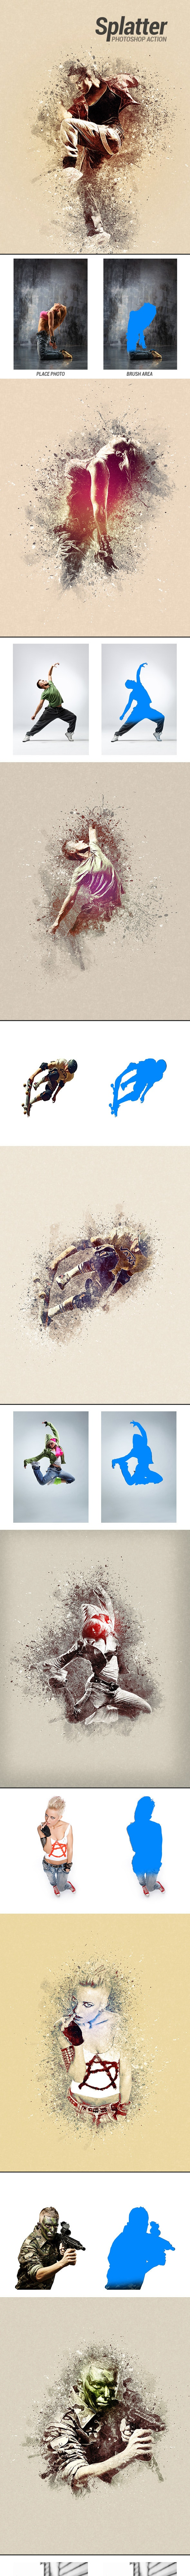 Splatter - Photoshop Action - Photo Effects Actions